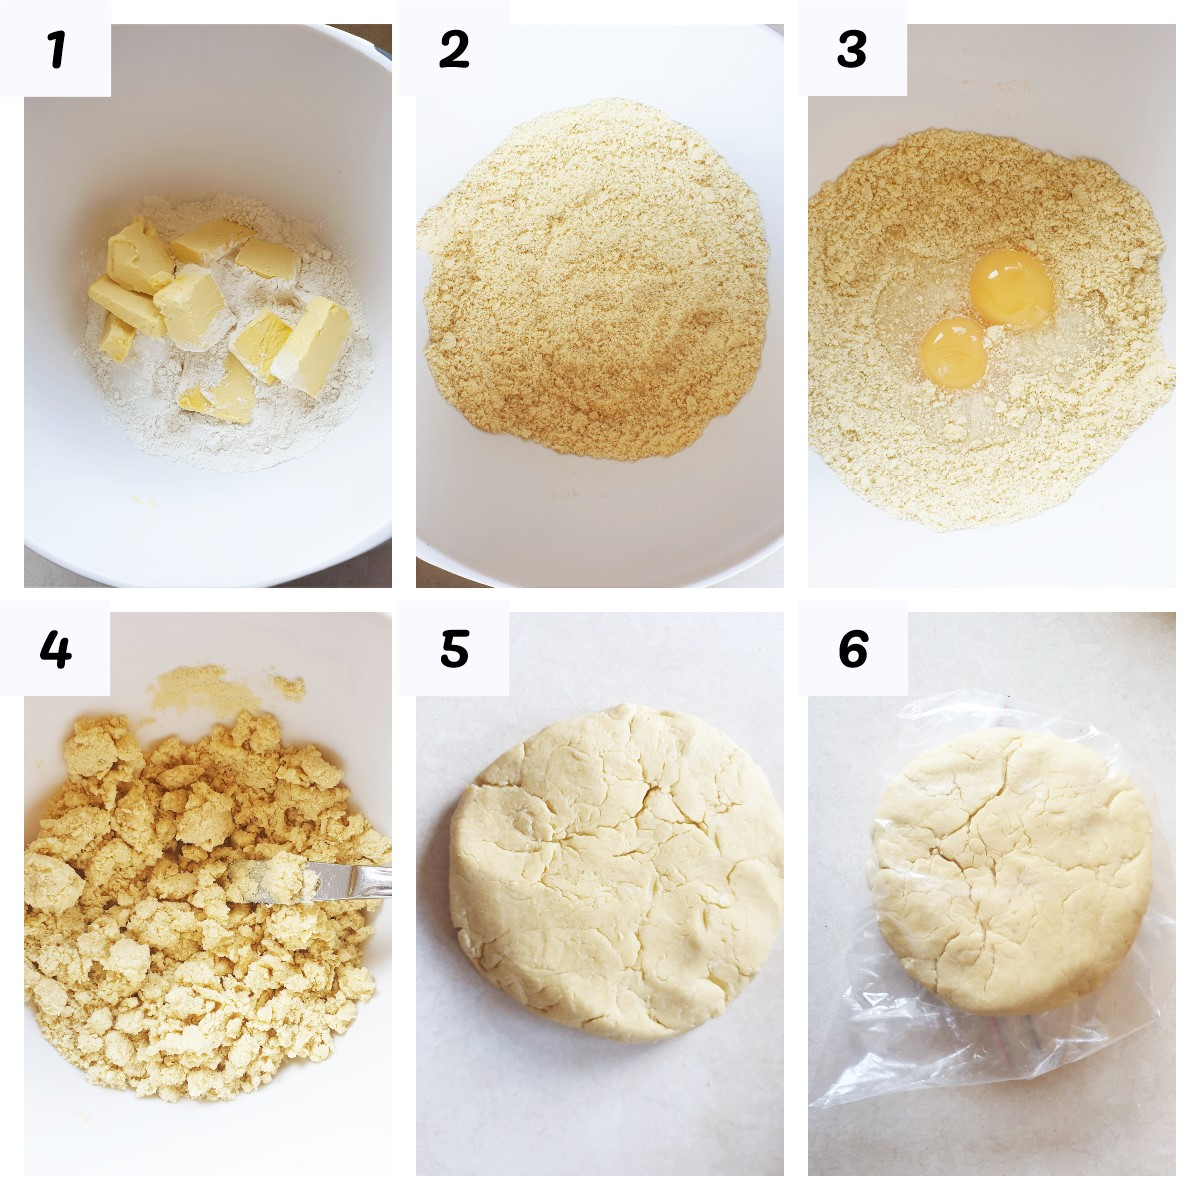 A collage of 6 images showing steps to make pastry.